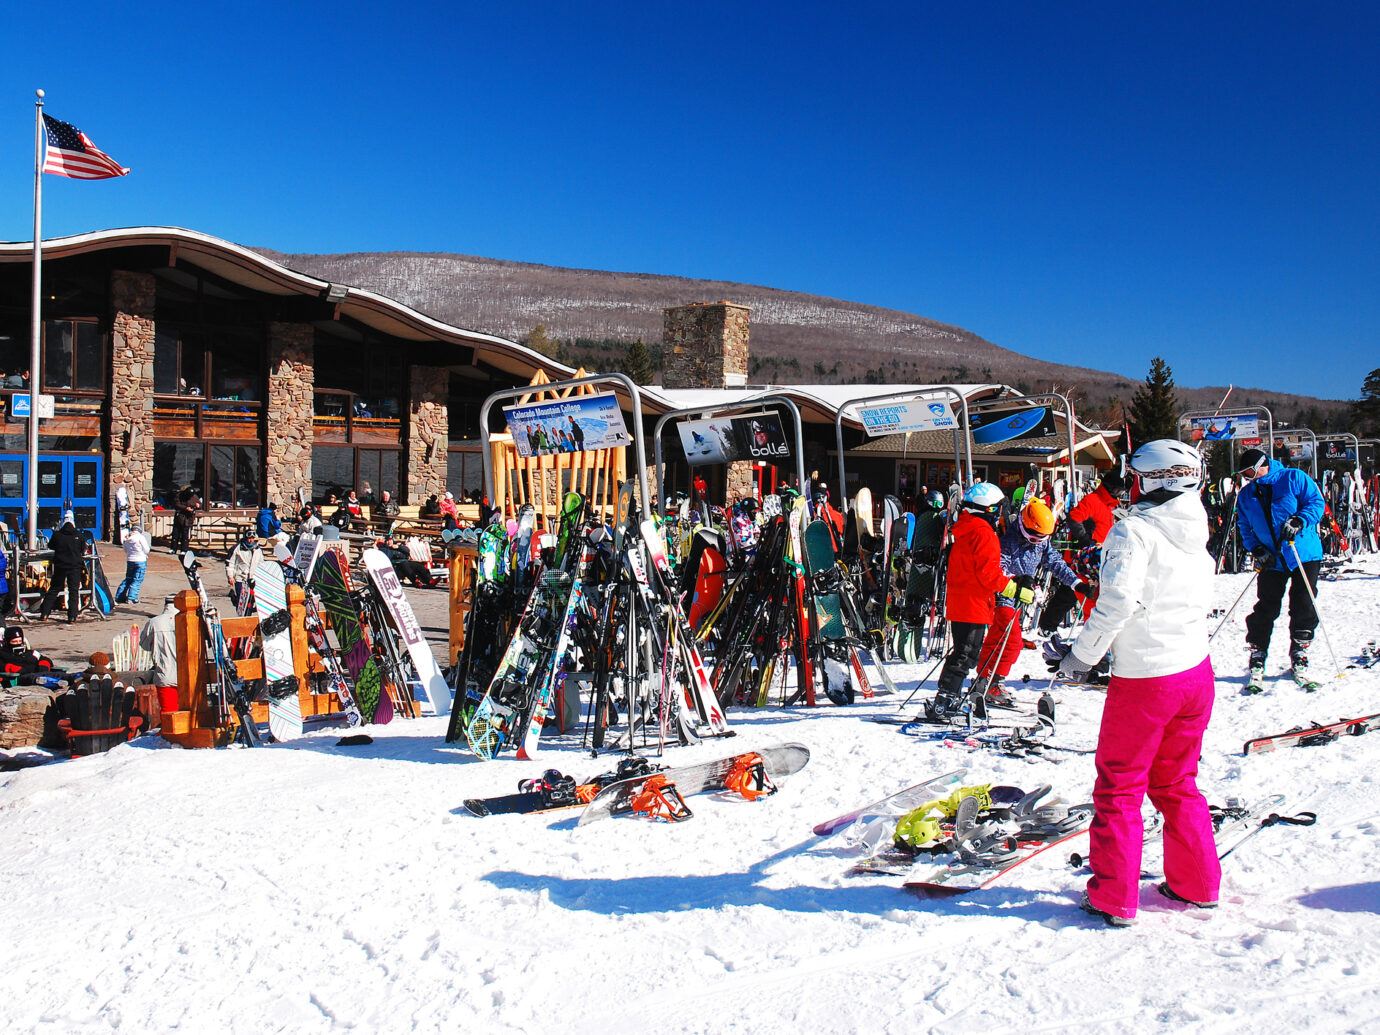 A young woman takes off her skis for a midday break at a ski resort in Hunter, New York